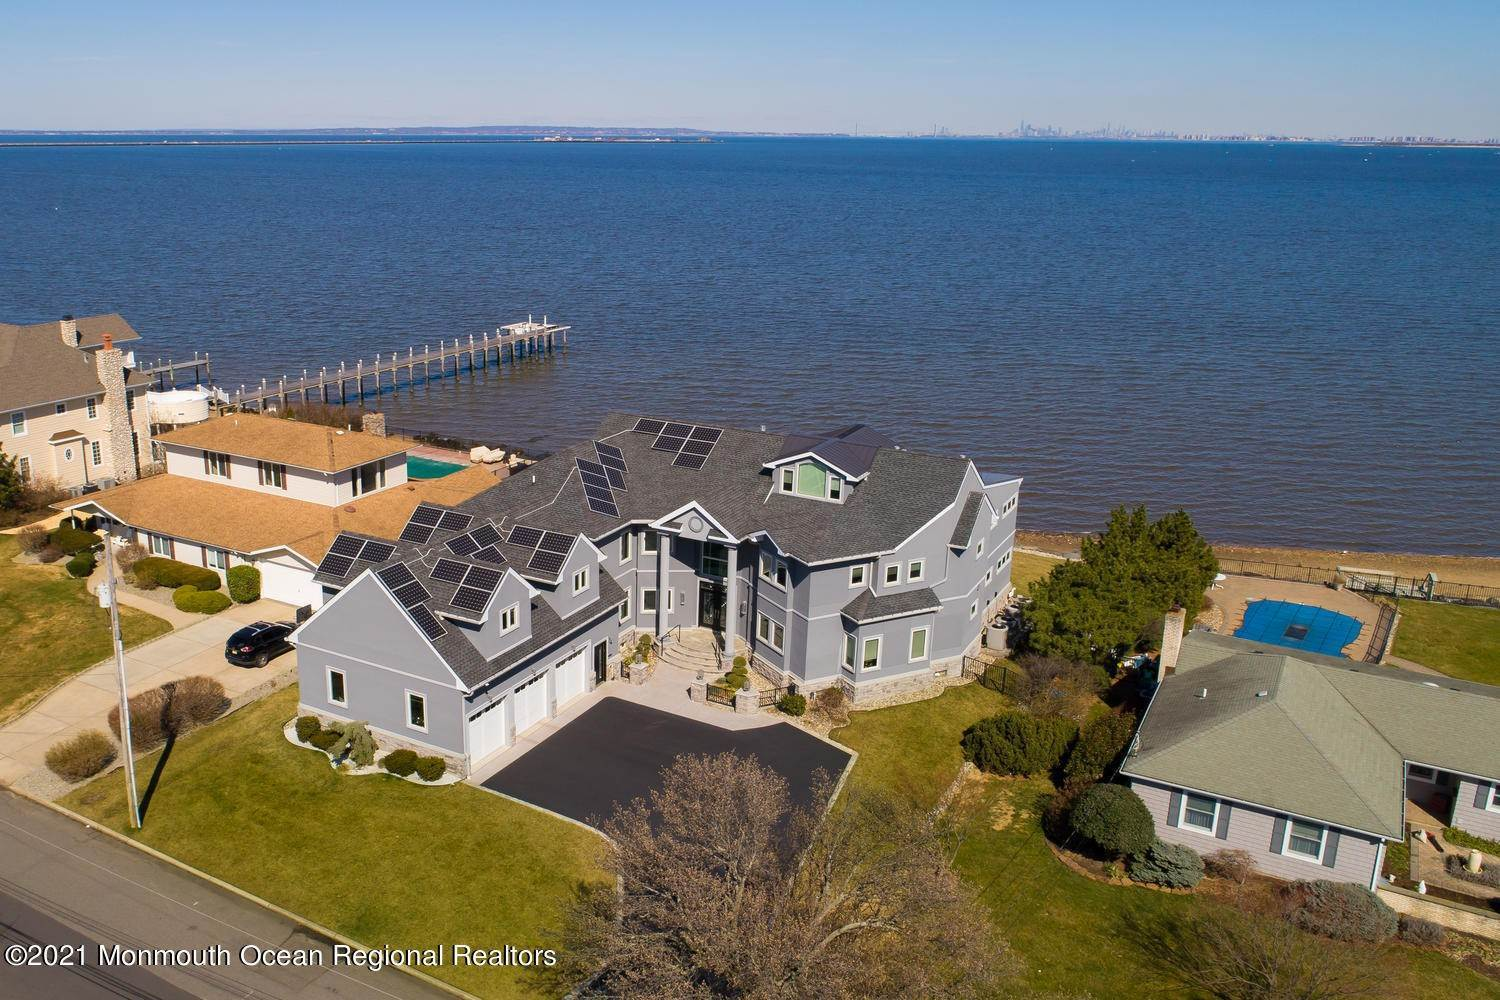 Single Family Home for Sale at 8 Harbor View Drive Atlantic Highlands, New Jersey, 07716 United States